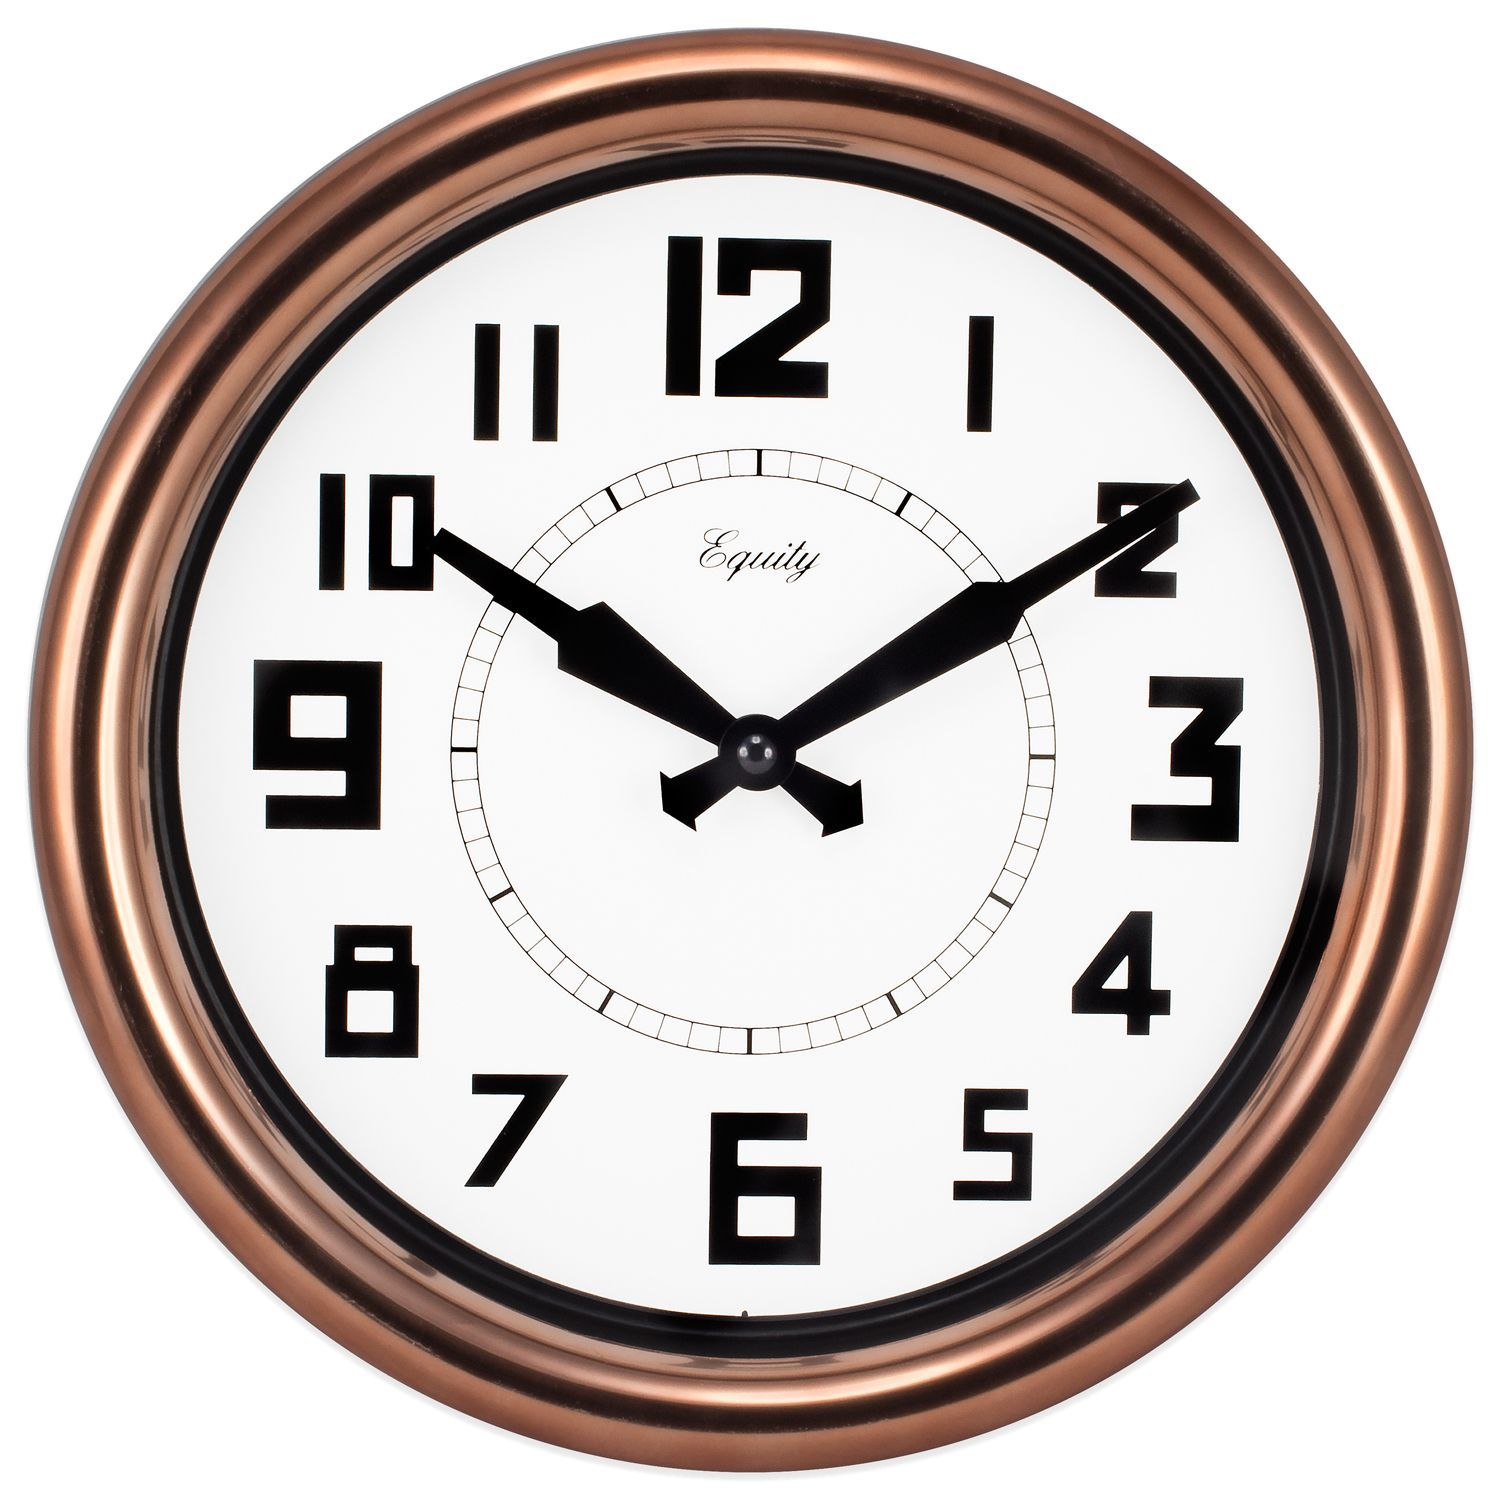 Lacrosse Technology Equity Copper 12 Inch Analog Wall Clock 12 Inch Copper Analog Wall Clock Brown La Crosse Technology Metal Clock Wall Clock Copper Copper Wall